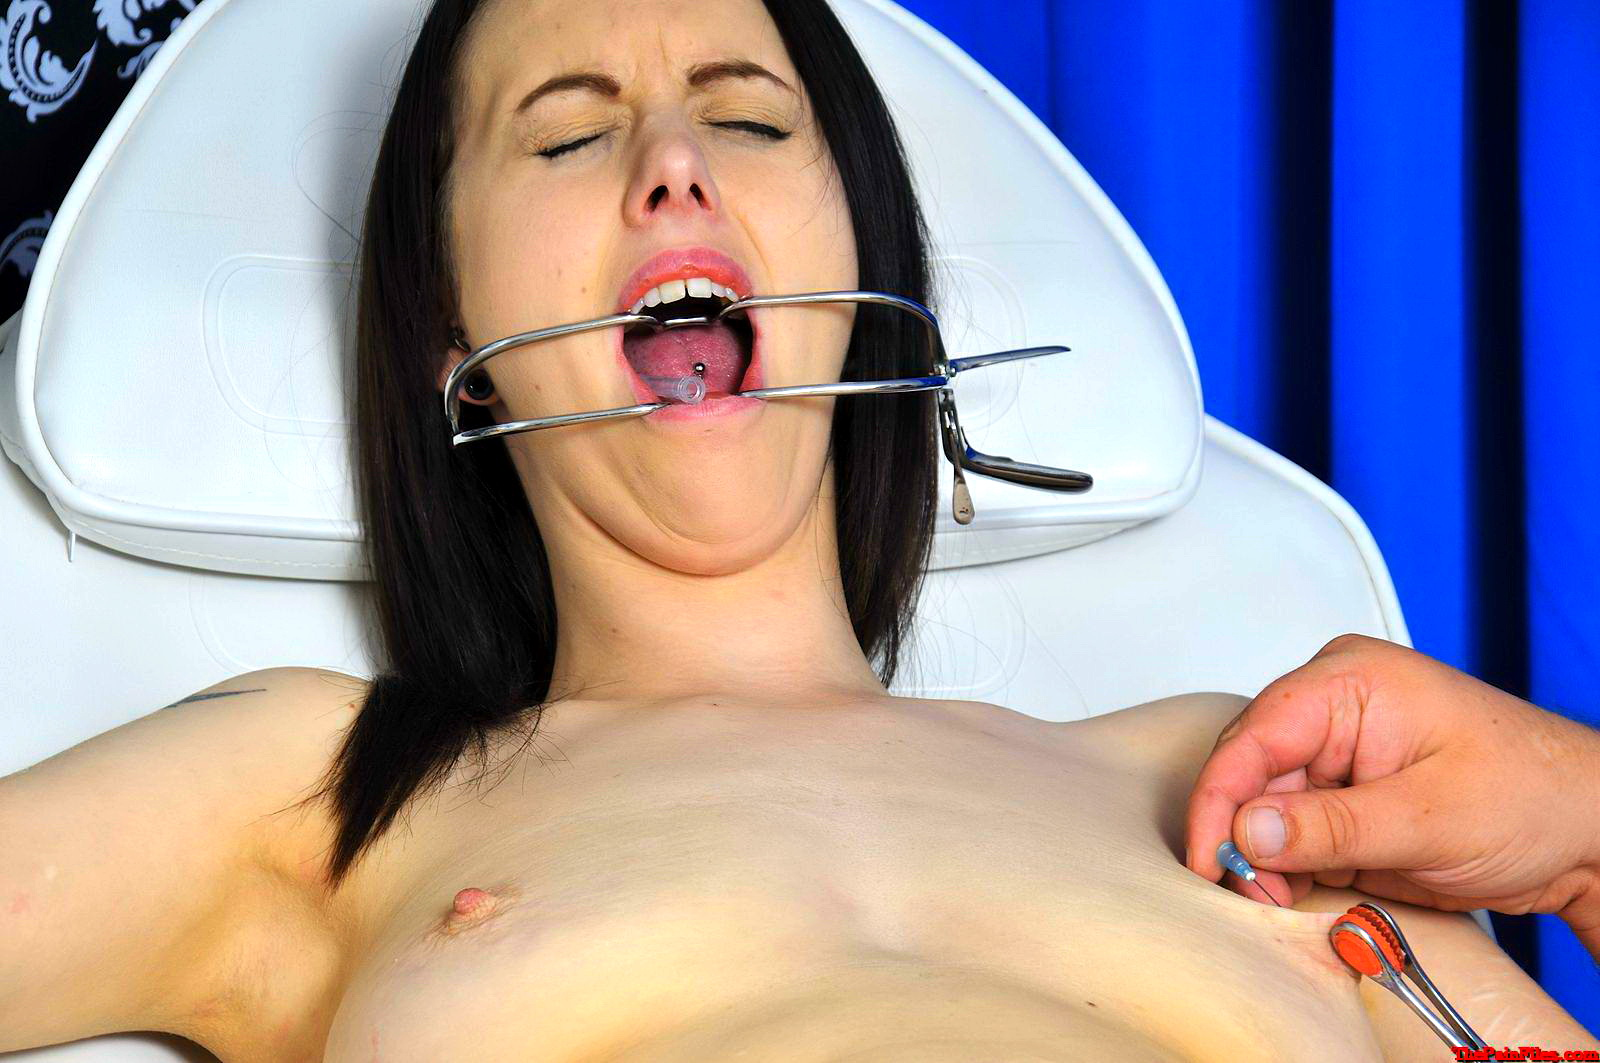 image Breast caning for tied up girl